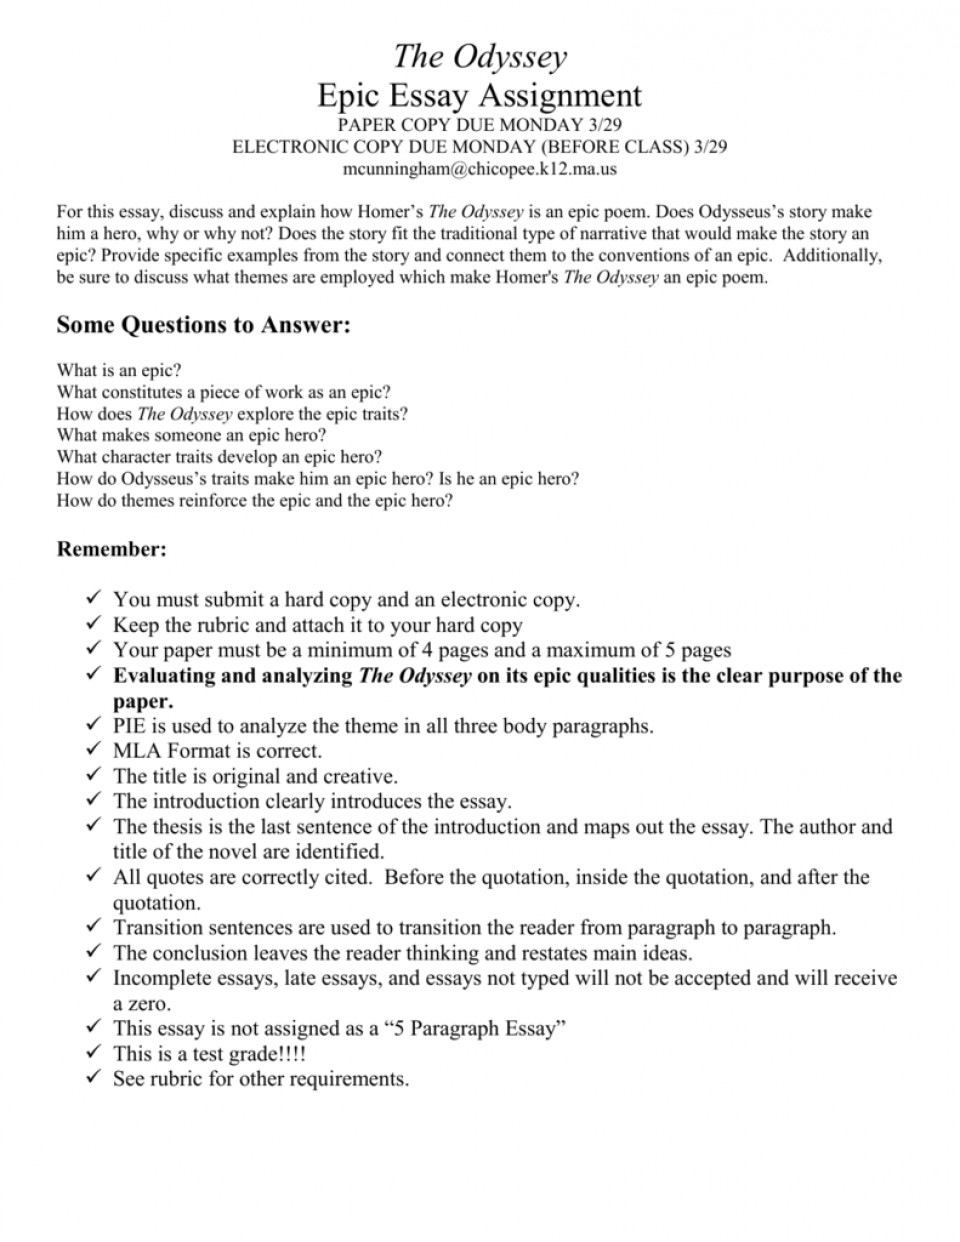 003 Odyssey Essay Topics 008040788 1 Amazing Hero Prompt 960